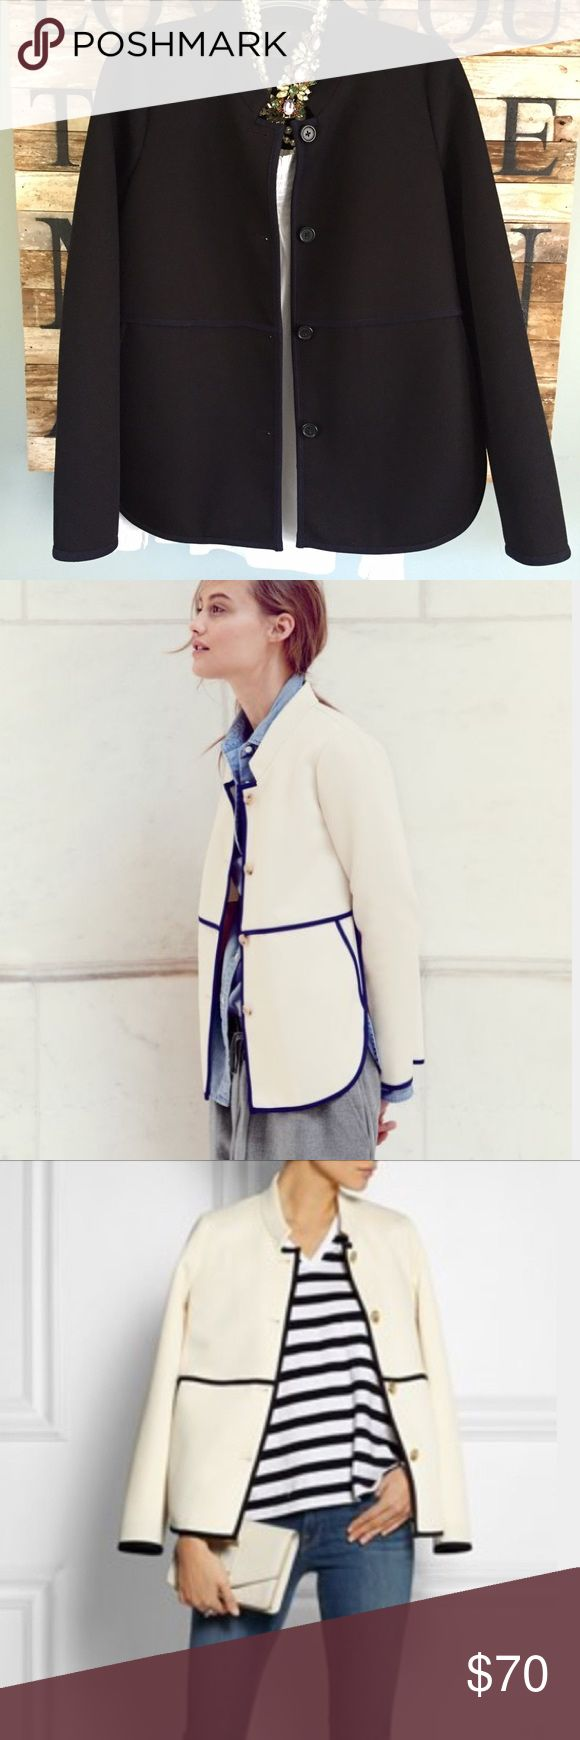 """NEW J.Crew Retail Twill Jacket NWOT, This is a great Spring transition jacket! Made from  twill and accented with contrast navy piping and overlapping side seems. It's what present day Jackie O would wear with cropped pants for a gallery opening, and then a big scarf for Central Park stroll🍃. Slant pockets that can fit cell phone and keys. 26"""" length. Poly/viscose/elastane. Machine washable. Smoke free home. J. Crew Jackets & Coats"""